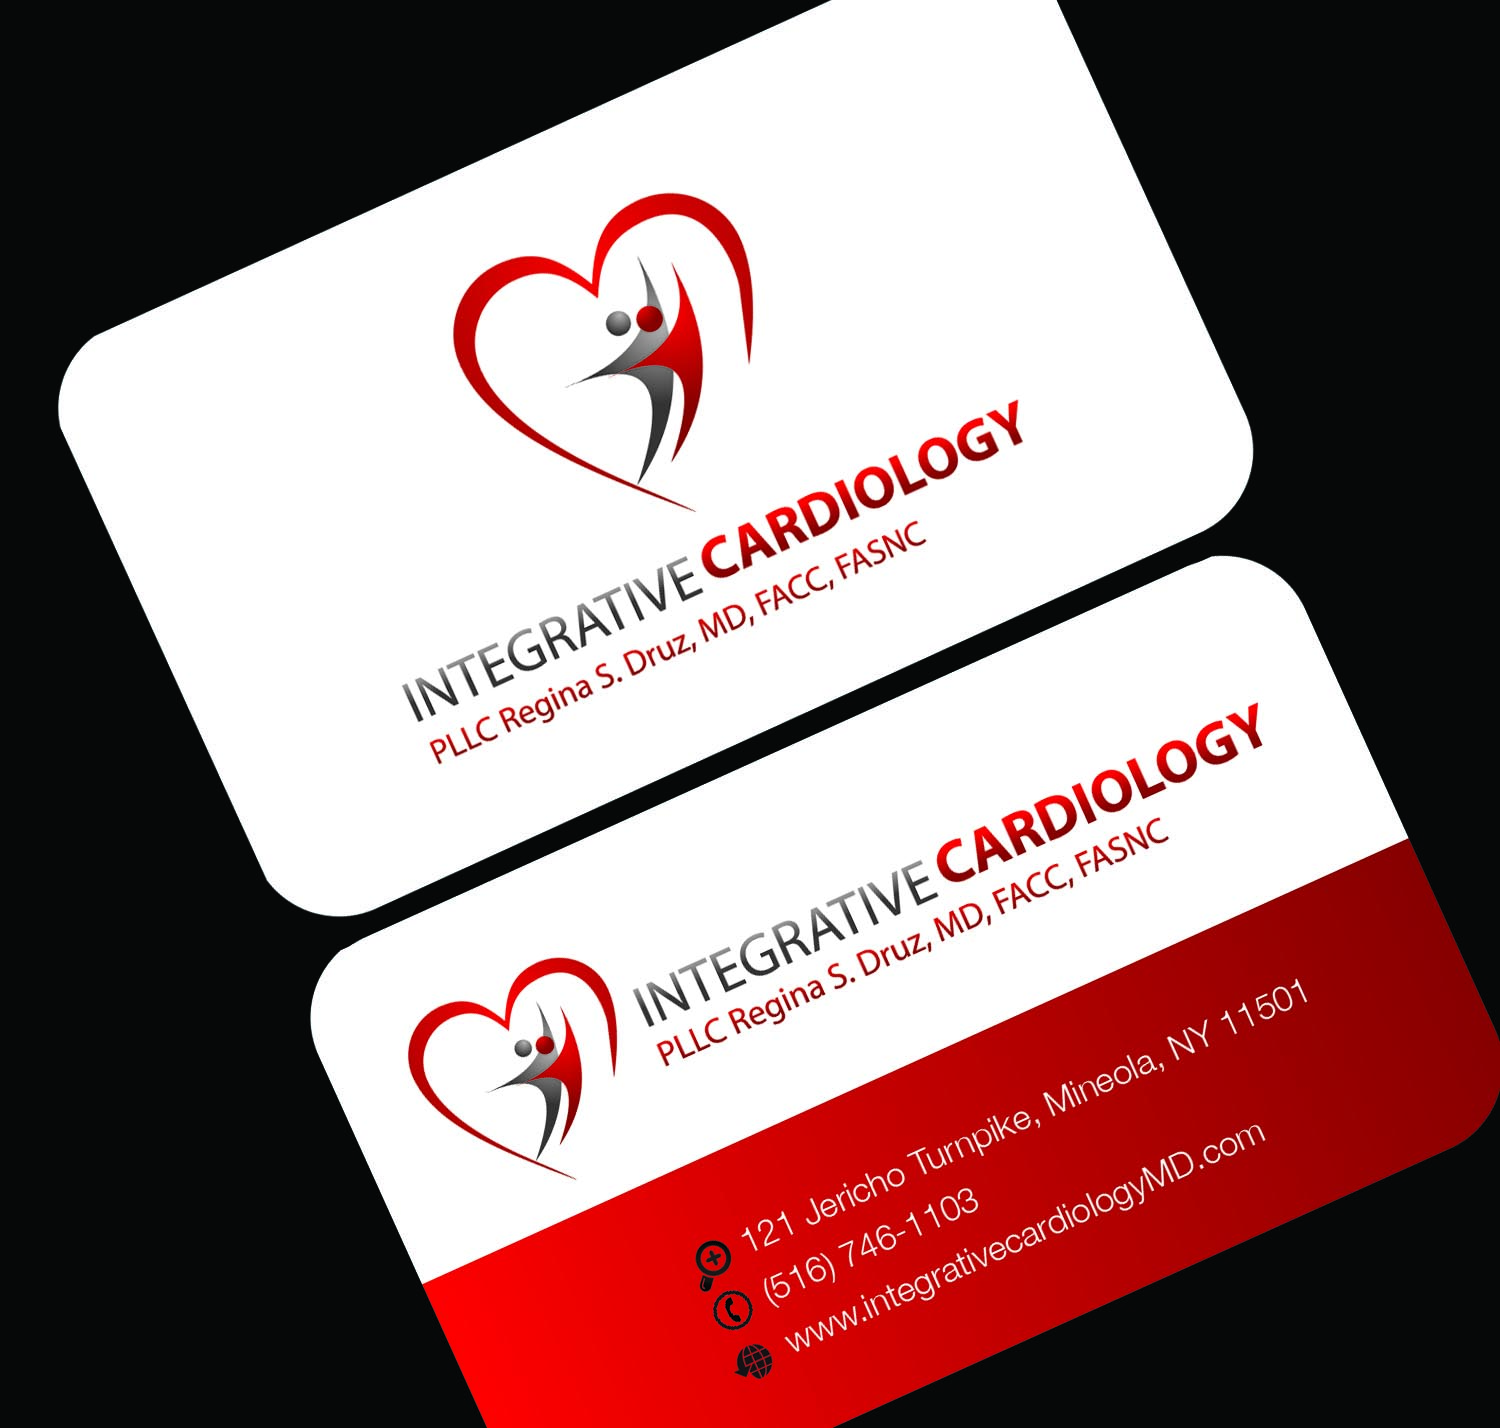 Business business card design for integrative cardiology pllc by s2 business business card design for integrative cardiology pllc in united states design 3232962 reheart Choice Image